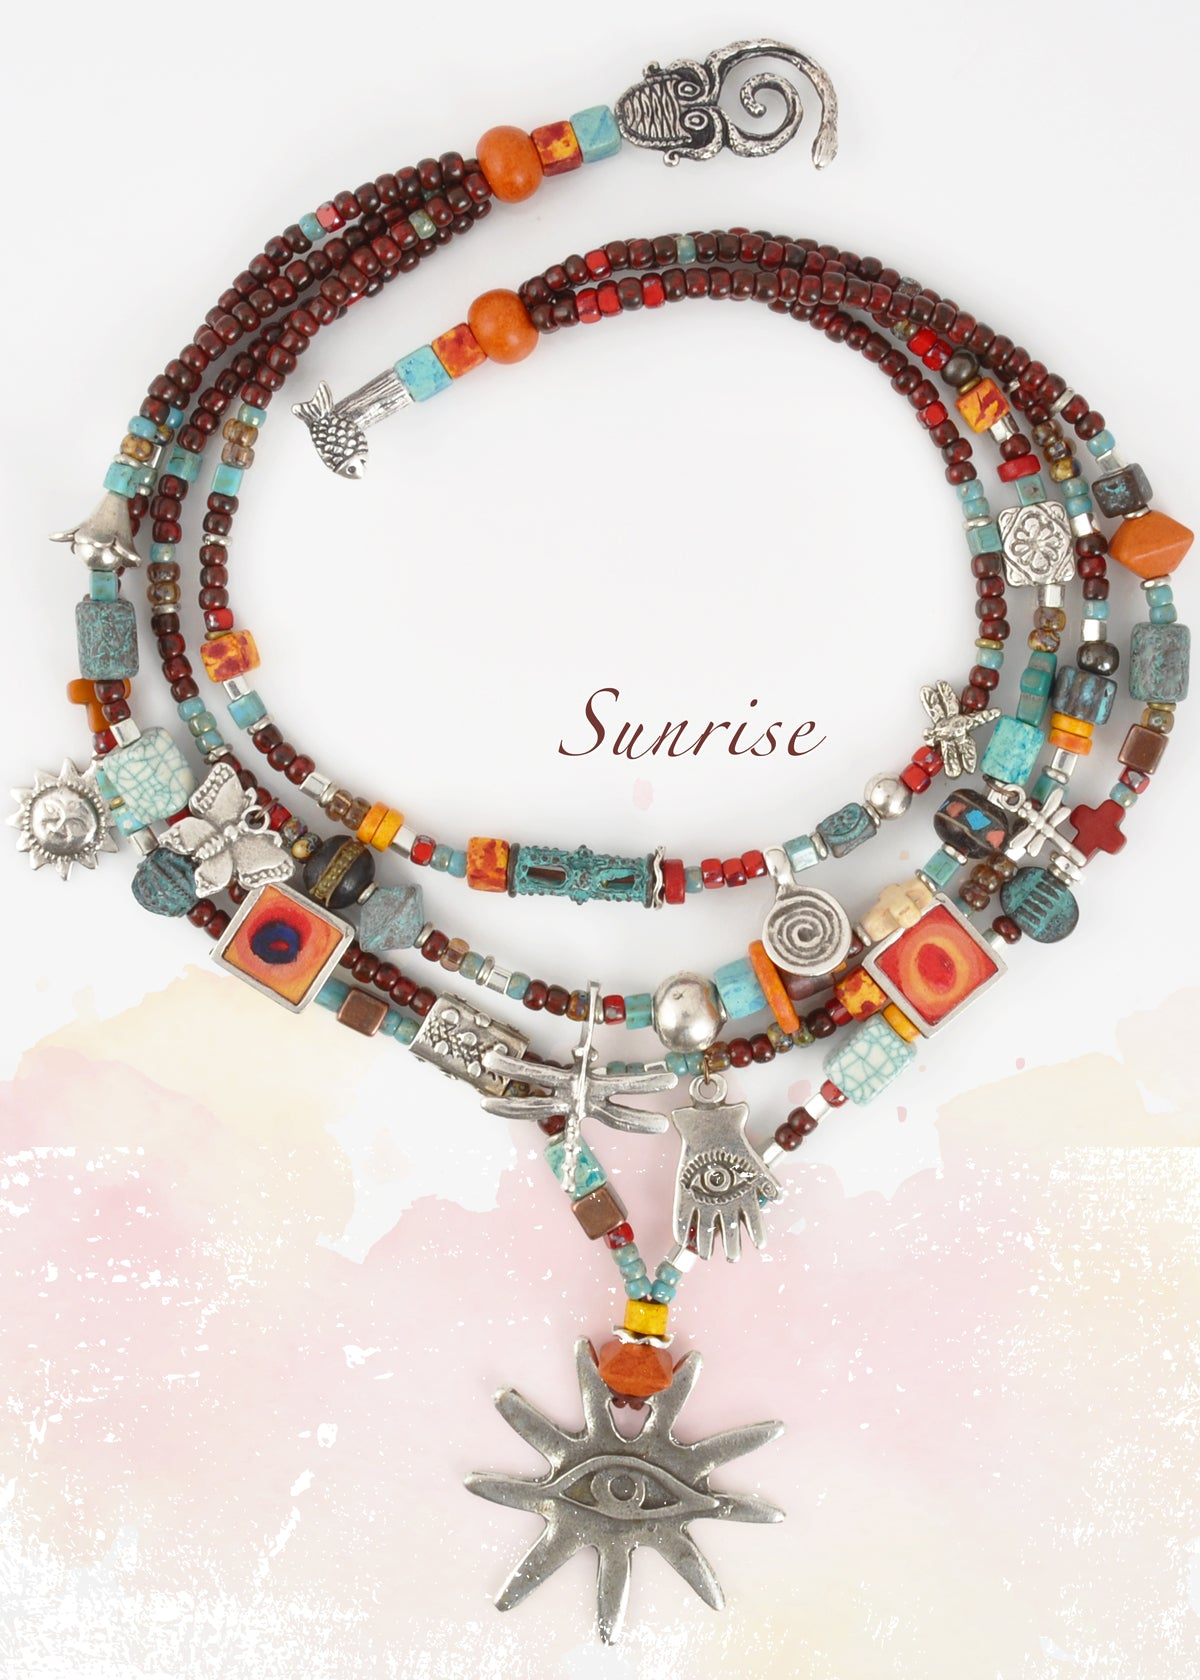 Sunrise Necklace Blog Tamara Scott Designs